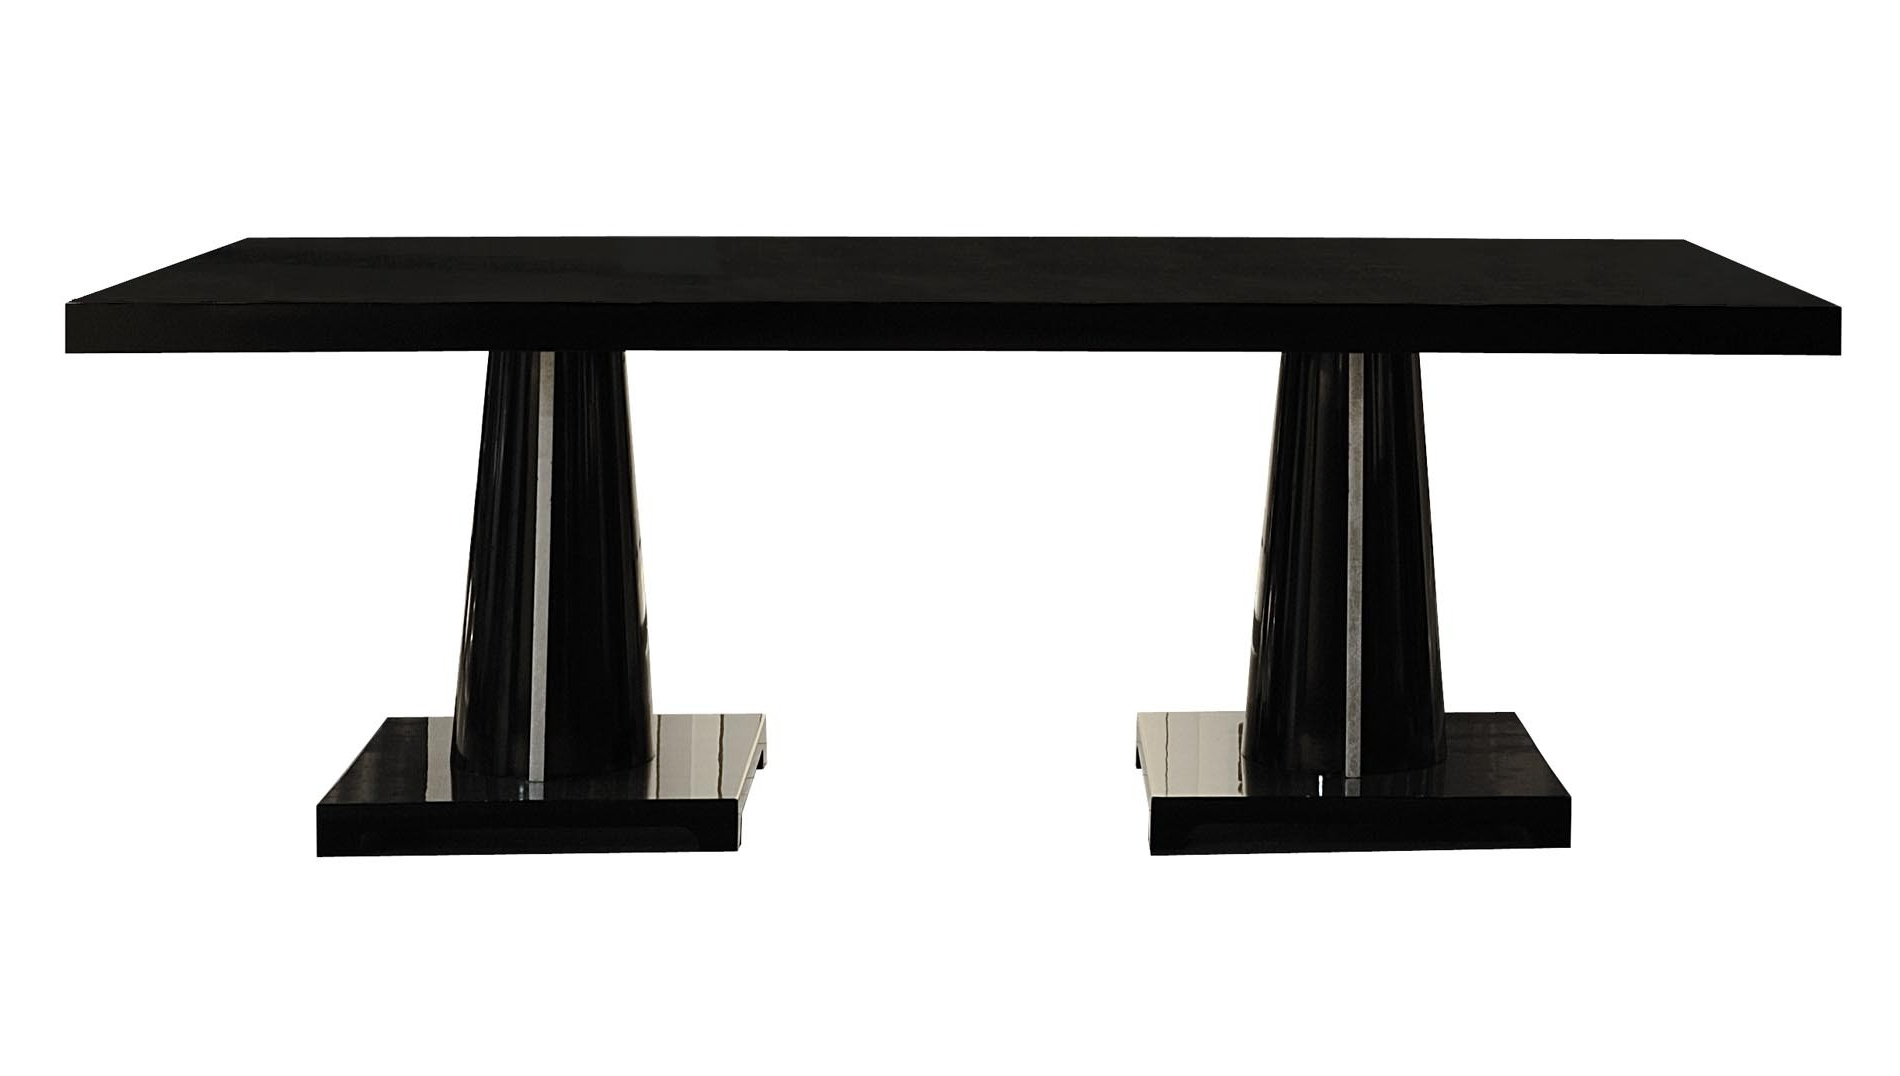 Isabella Dining Tables Regarding Most Popular Isabella Costantini, Olimpia Dining Table, Buy Online At Luxdeco (View 16 of 25)